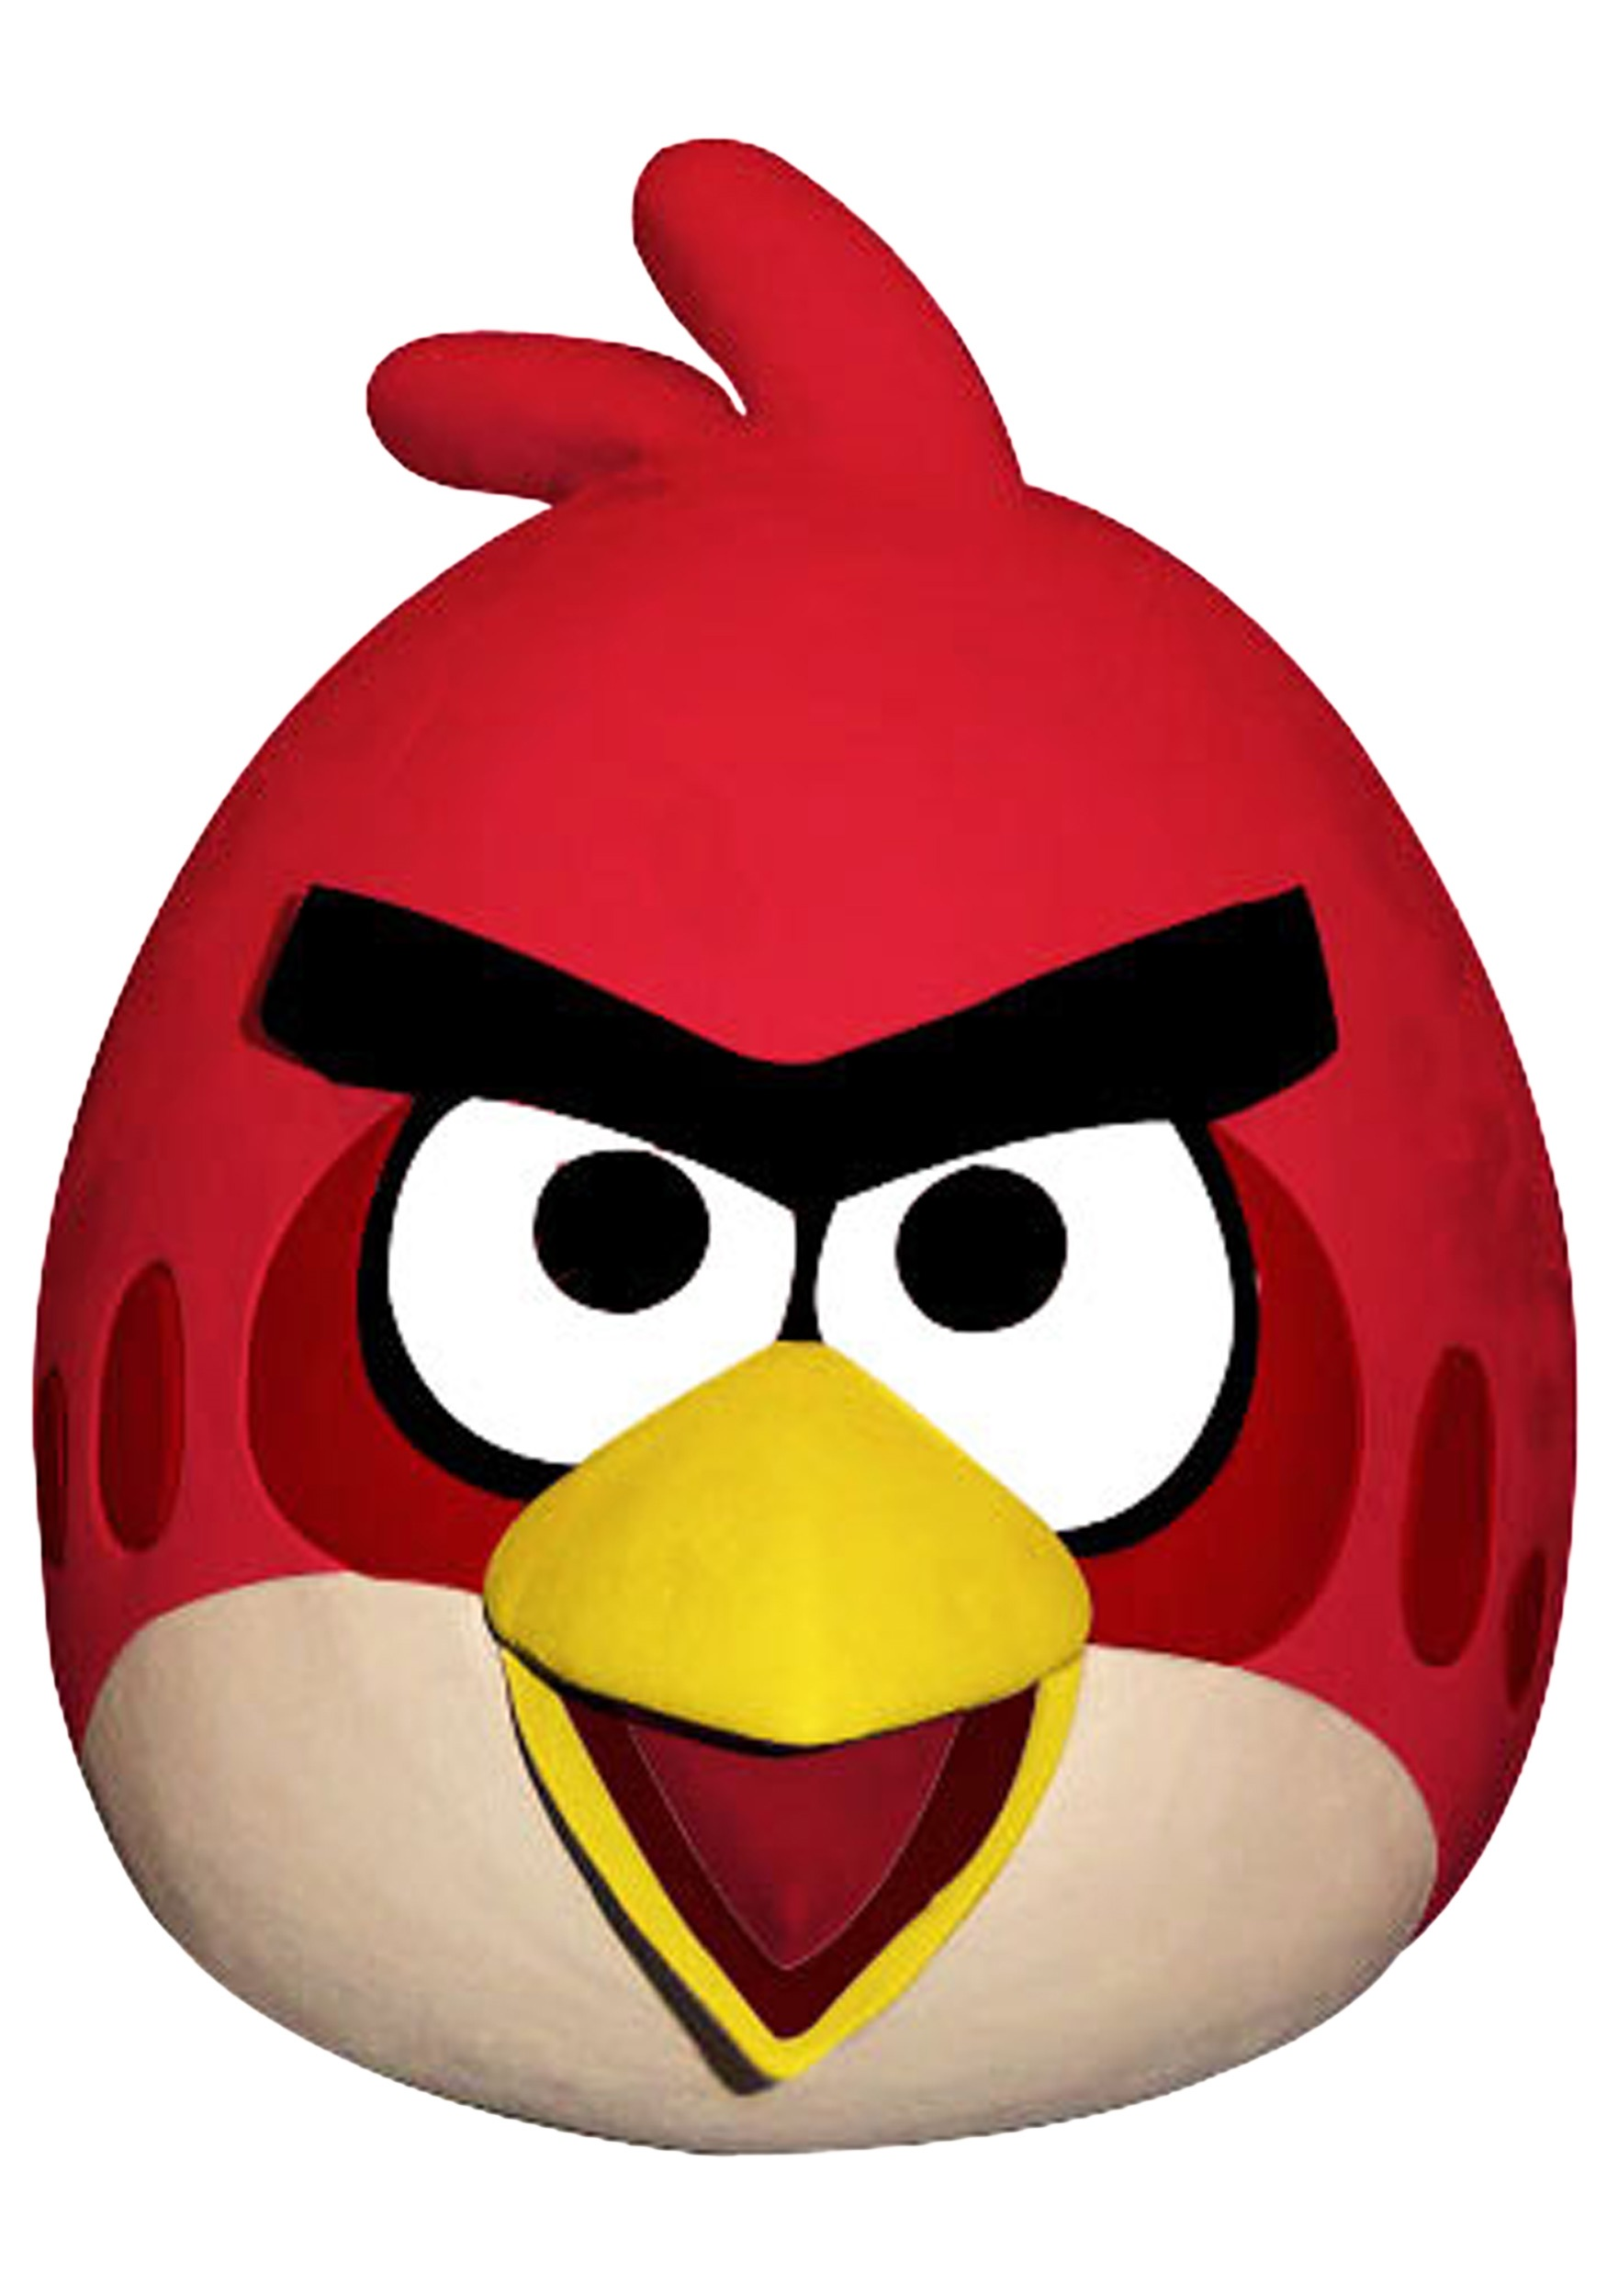 Mask clipart angry bird (49+) Bird clipart angry masks